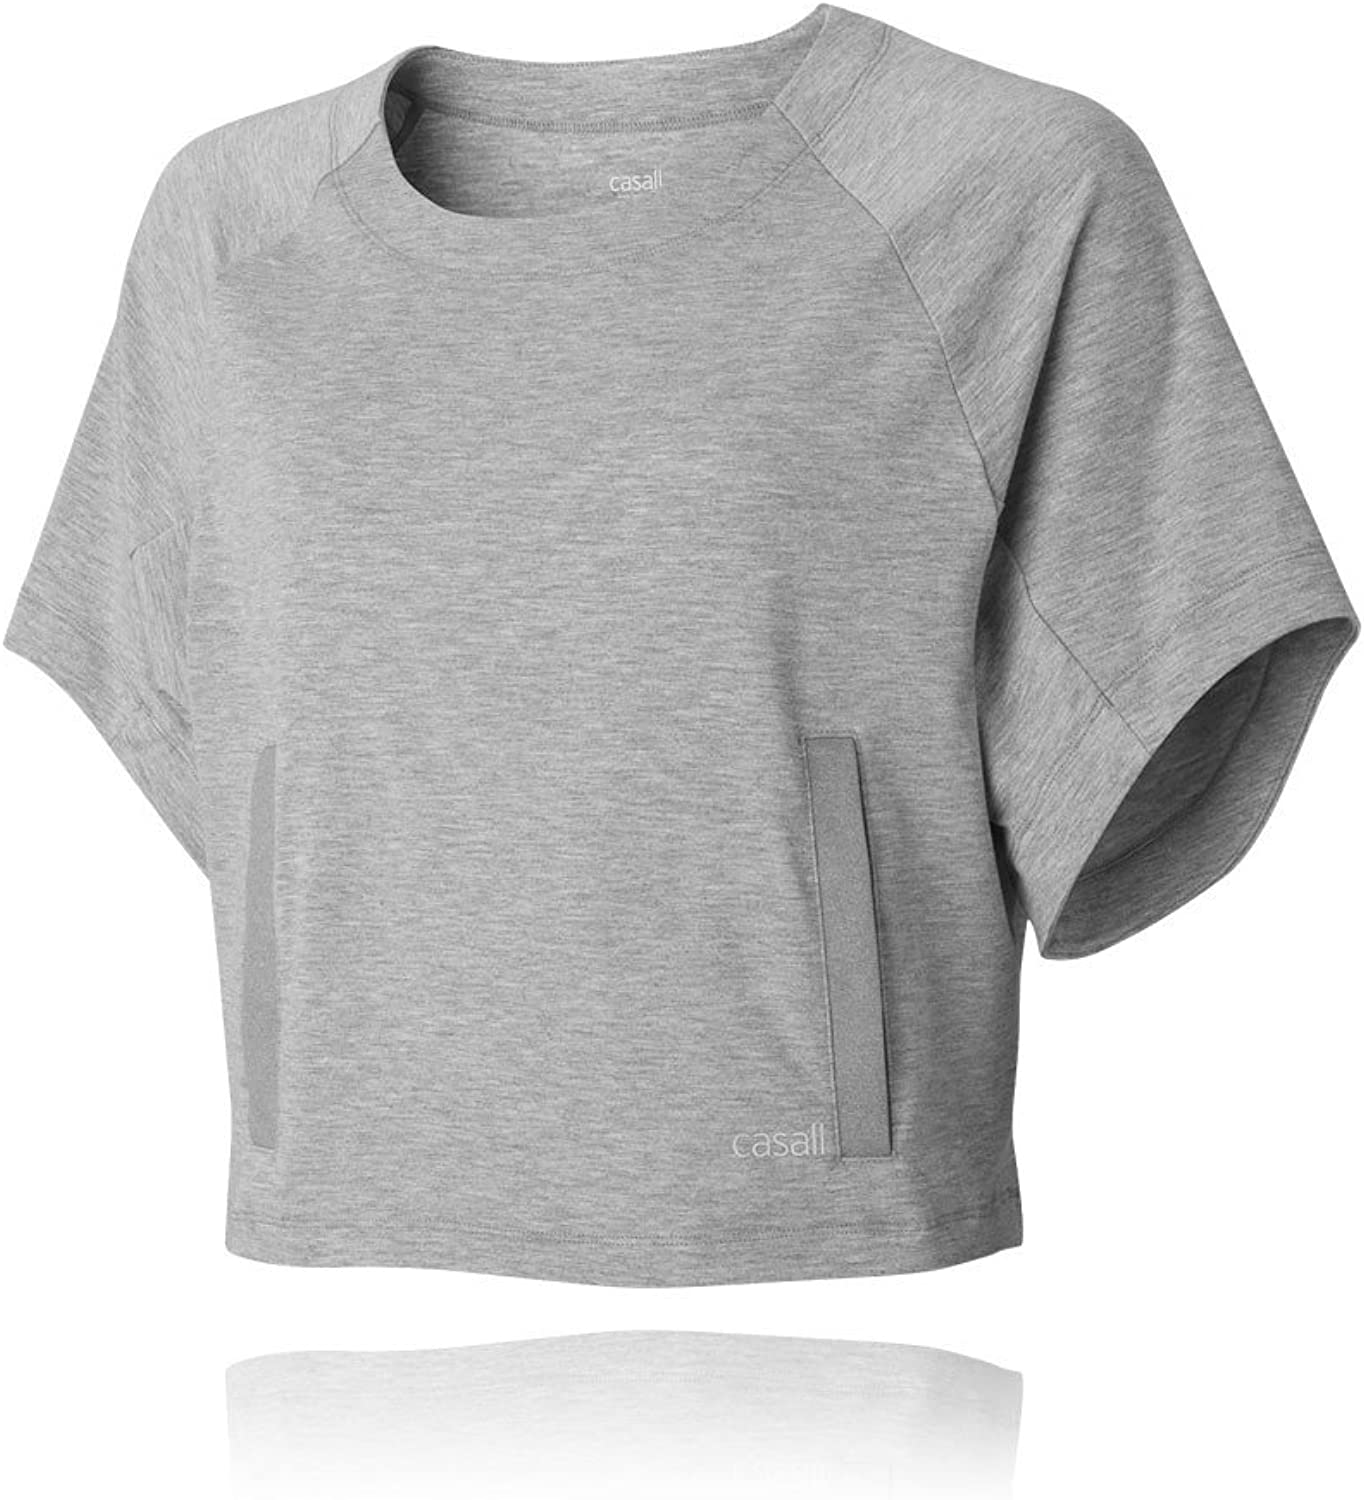 Casall Women's Boxy Crewneck Top